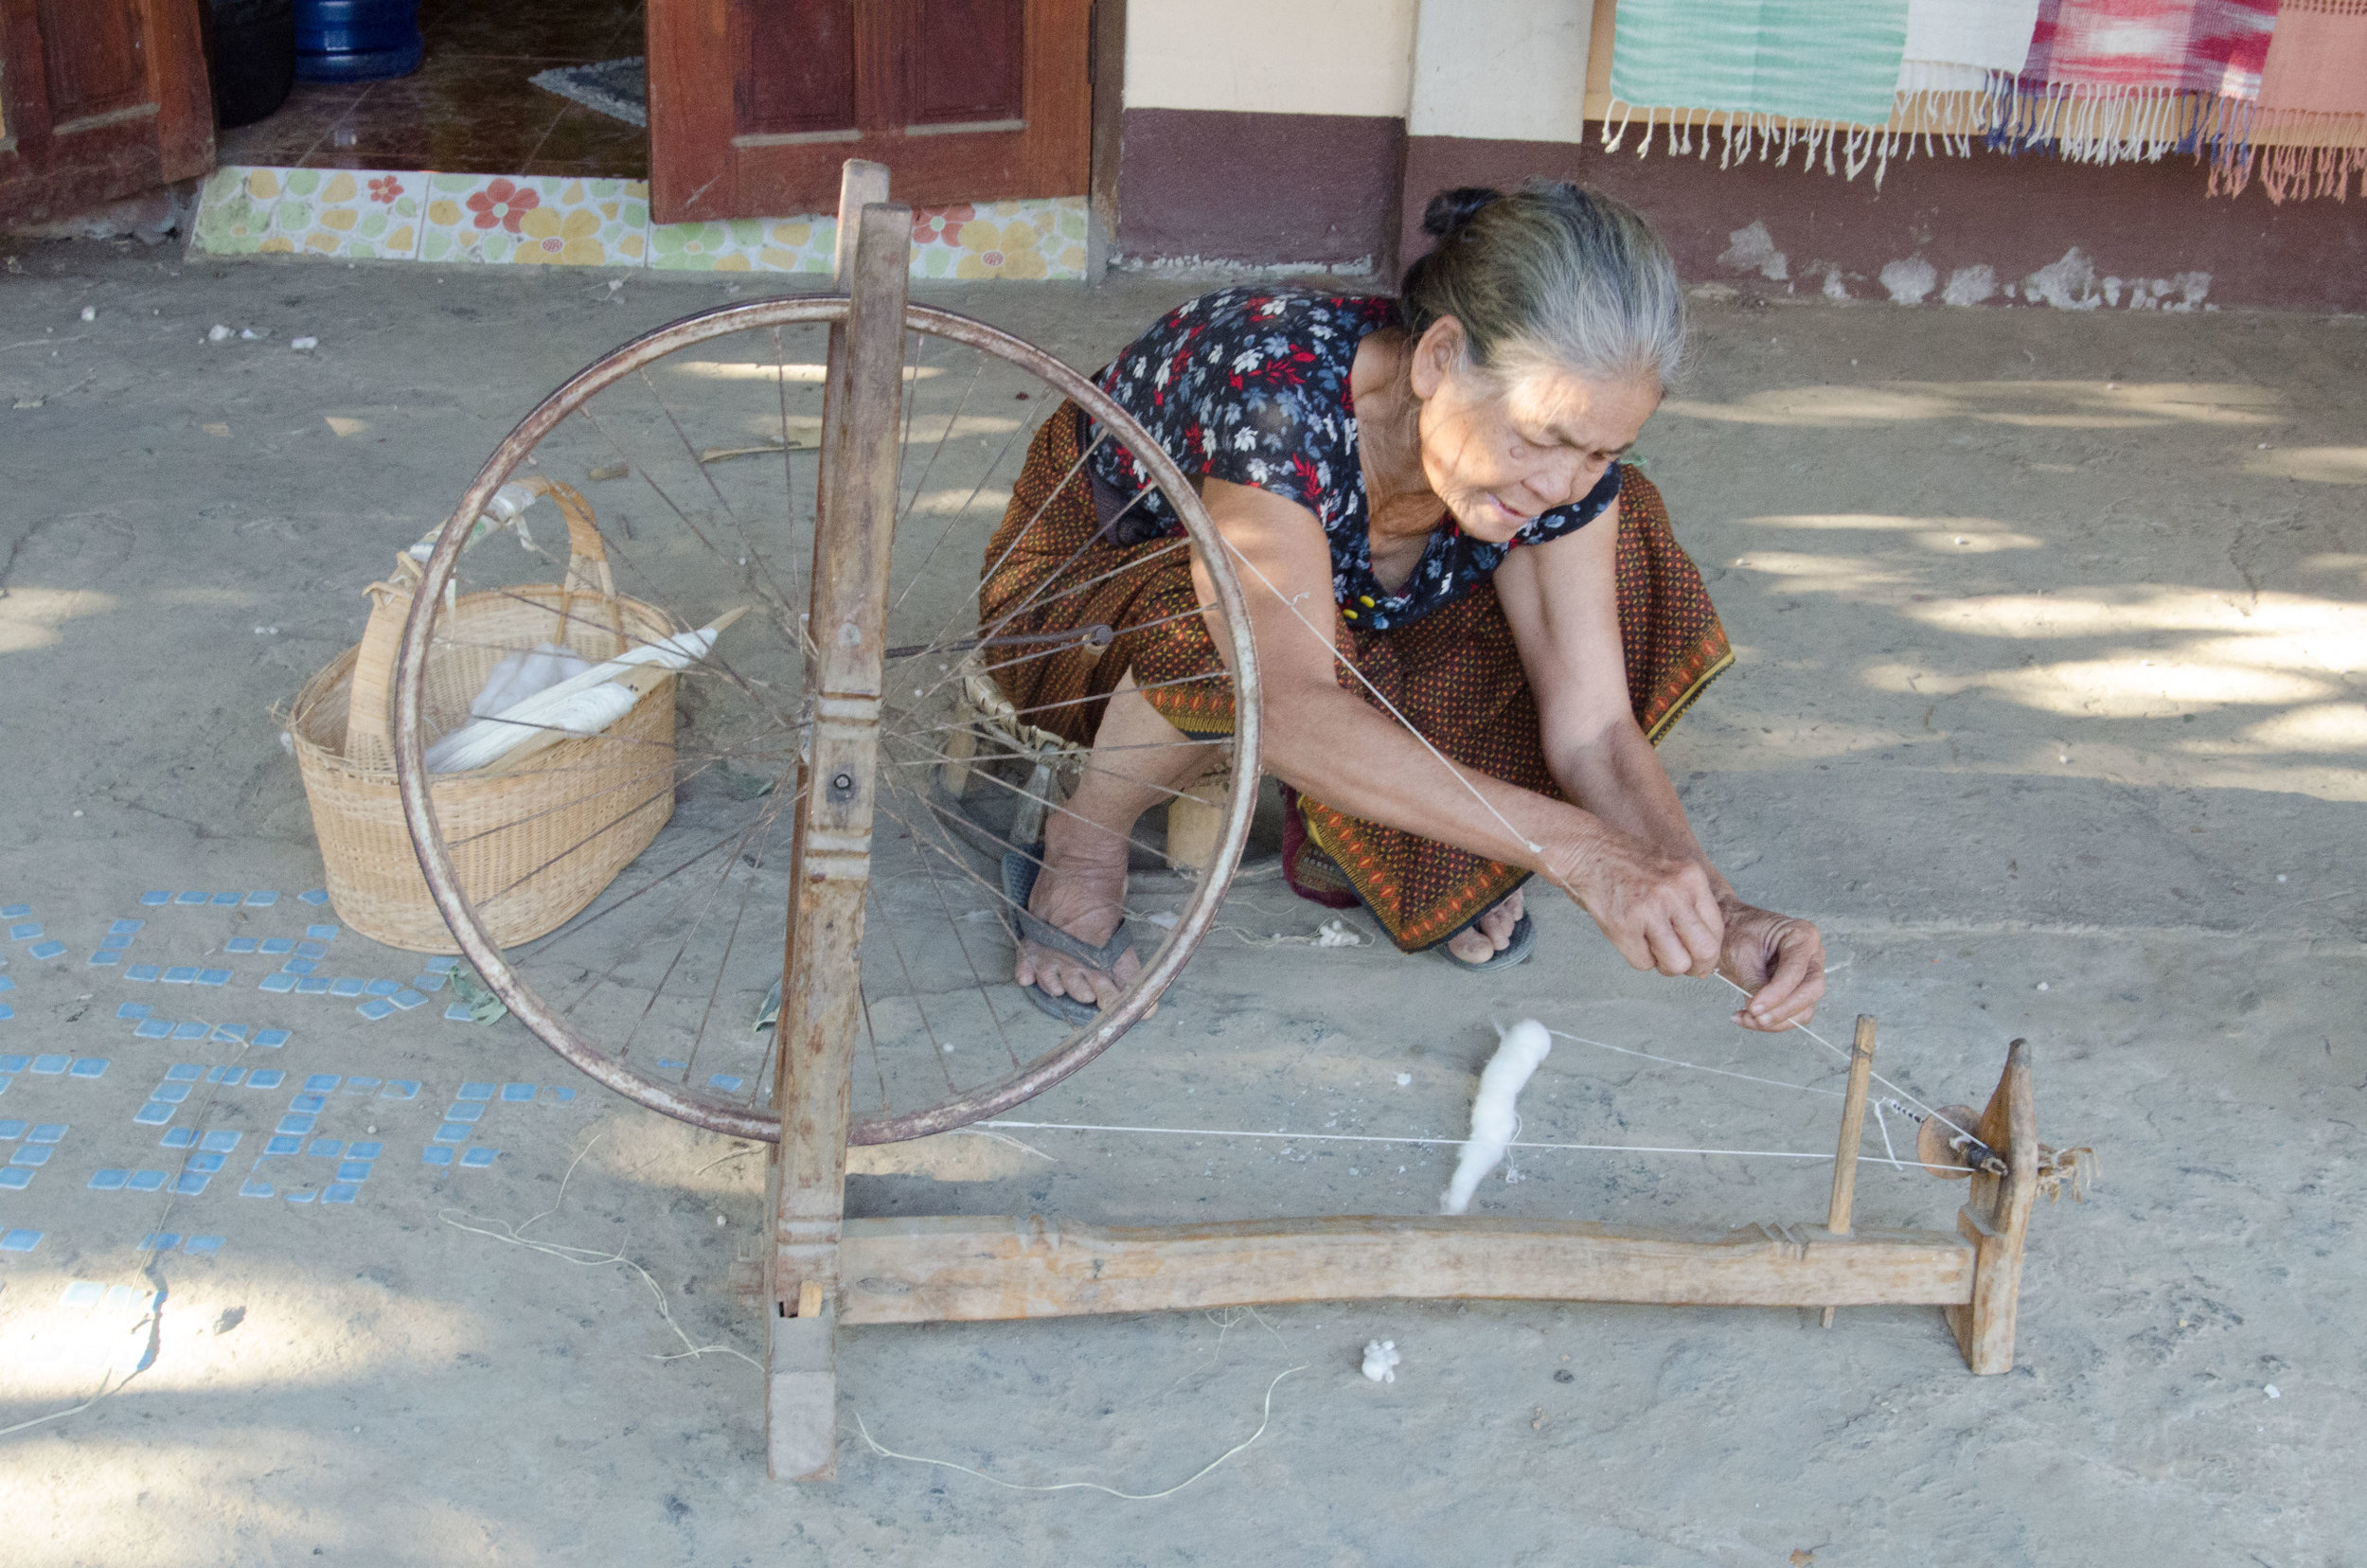 Lowlands ethnic minority village lady spinning ctoton, Luang Prabang, Laos, 1 Dec 2017.jpg